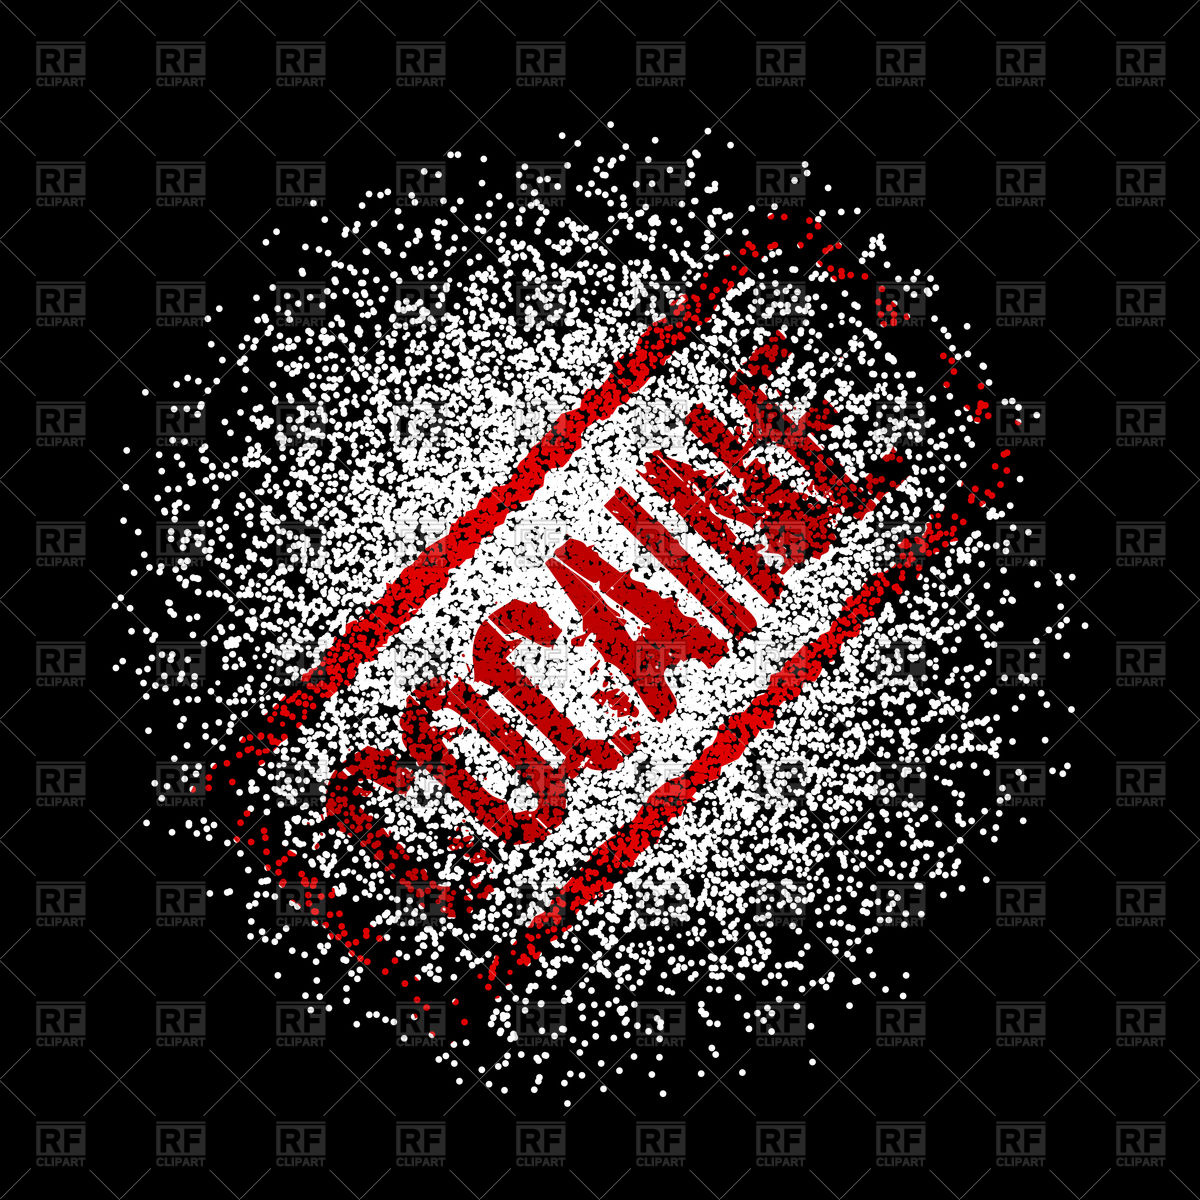 Cocaine on black background Vector Image 151180 RFclipart 1200x1200